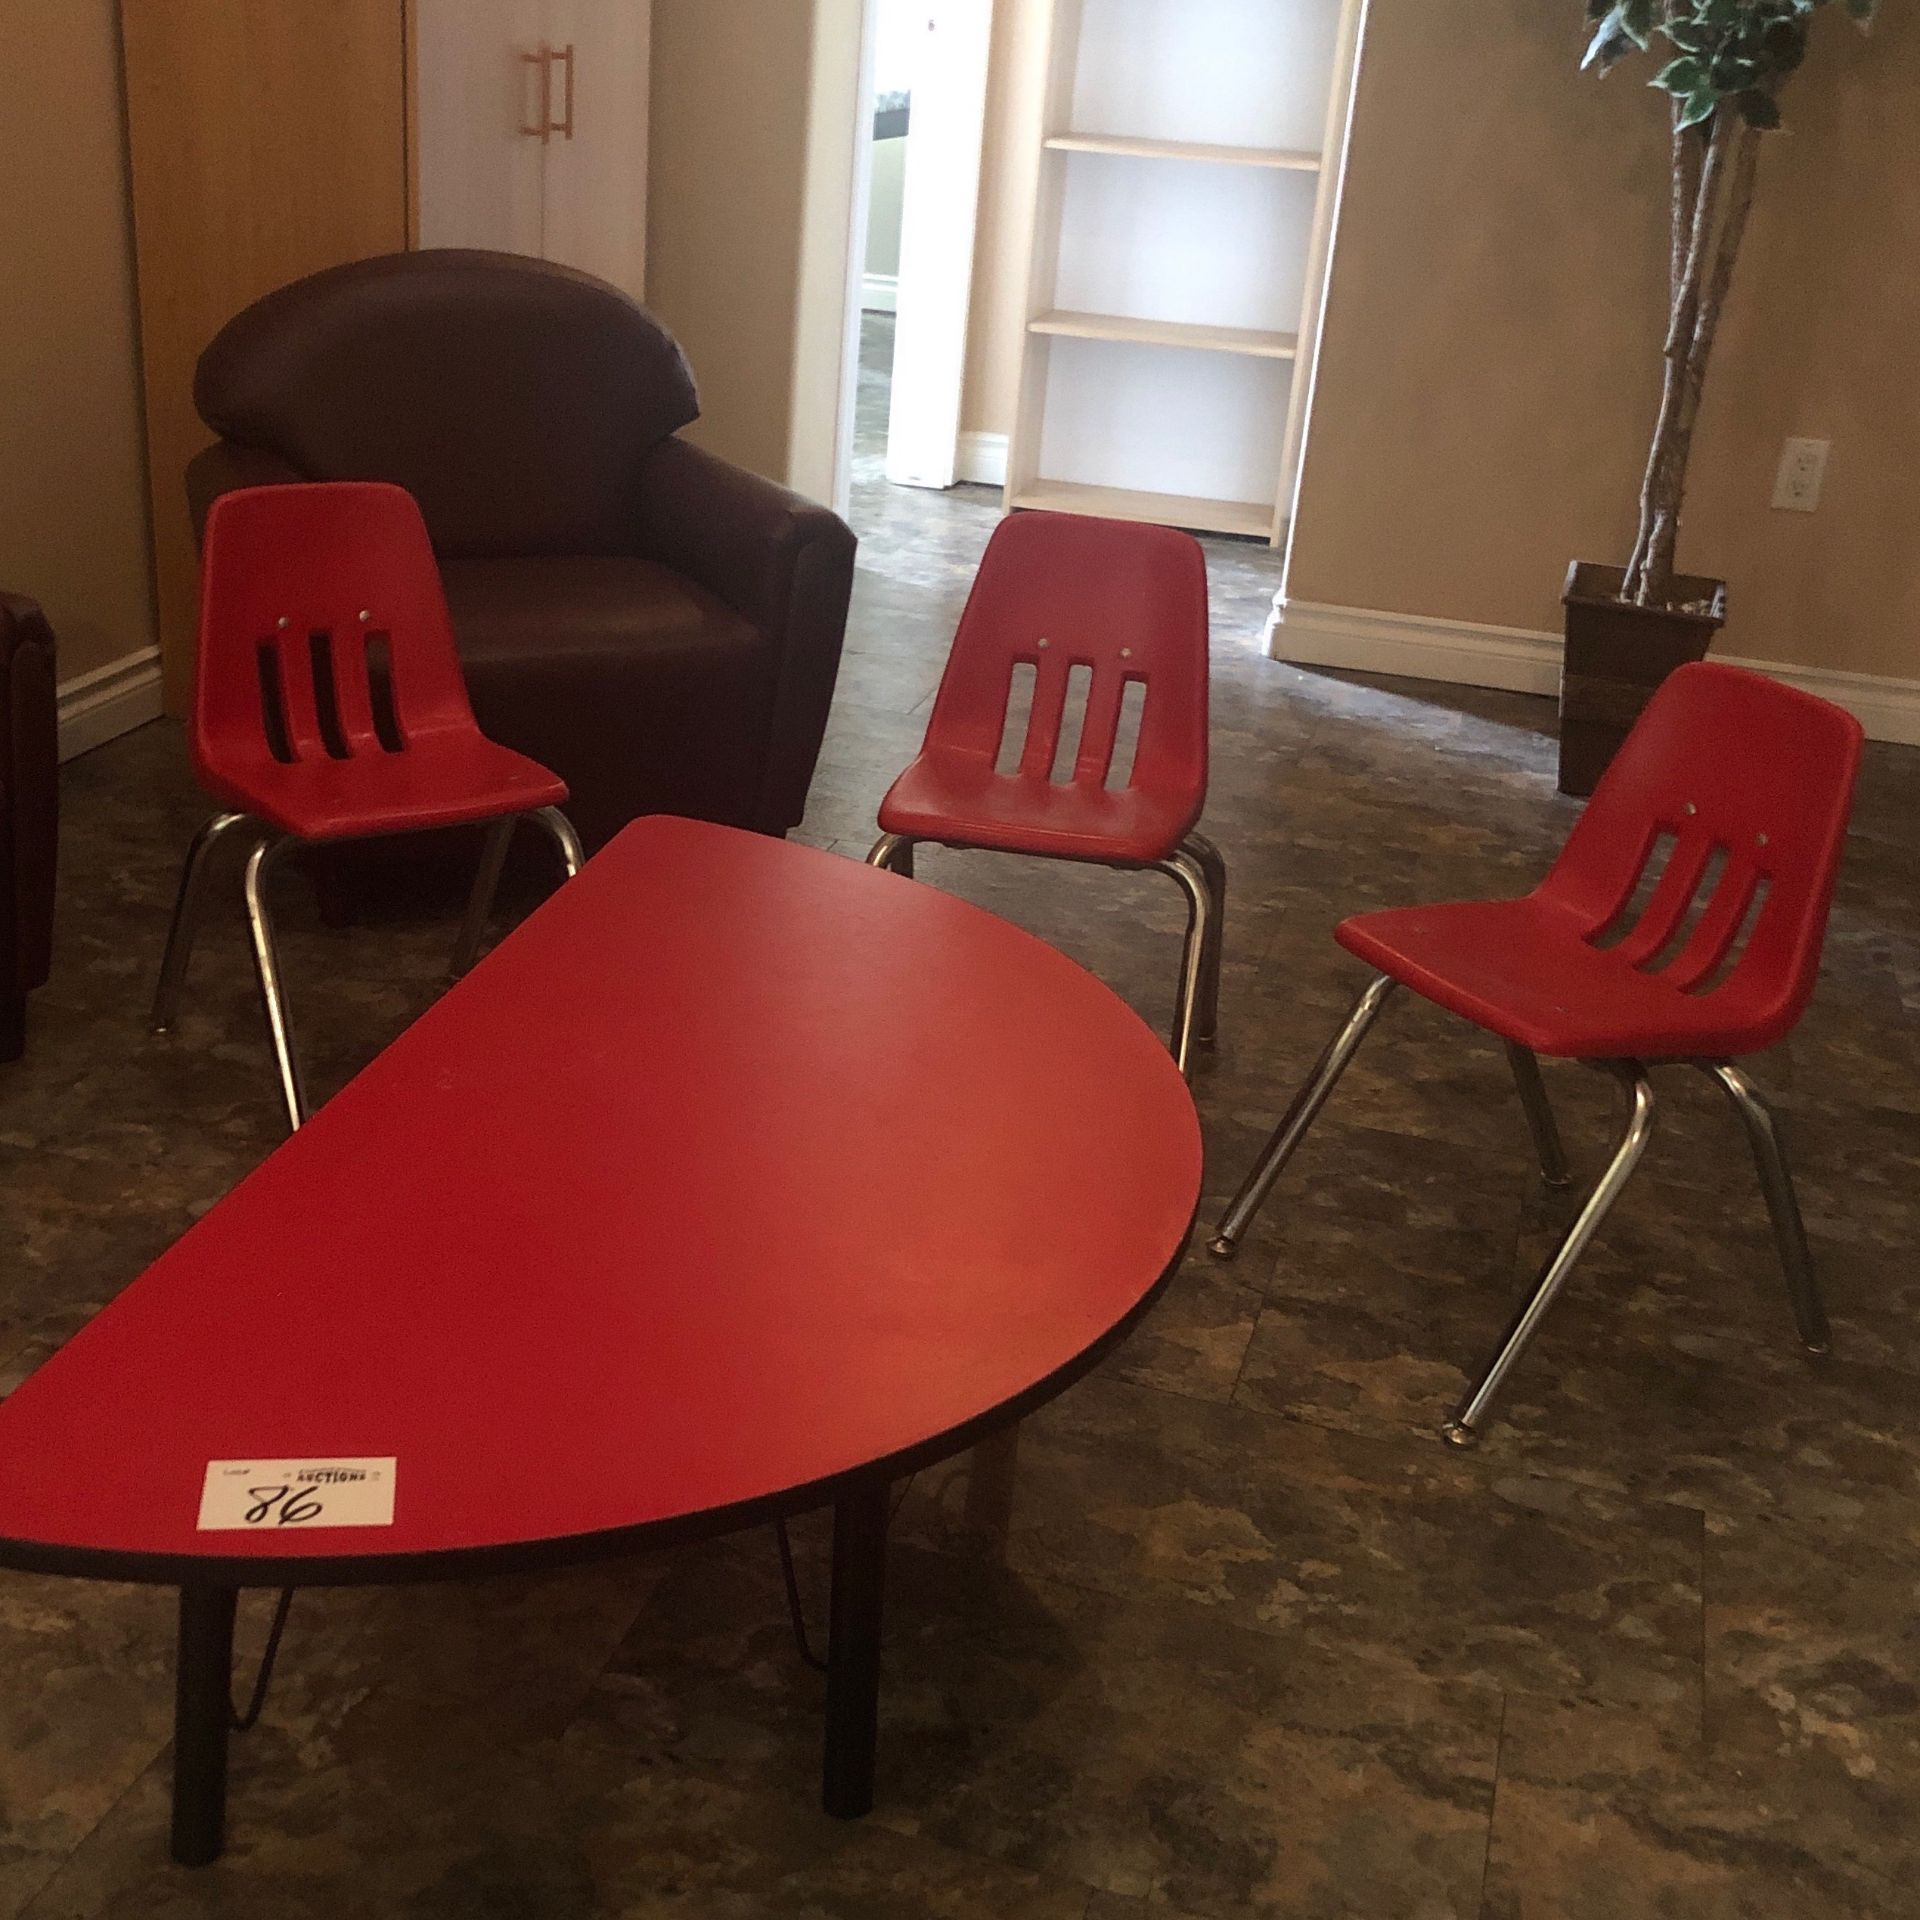 Table, adjustable legs, 3 chairs, red